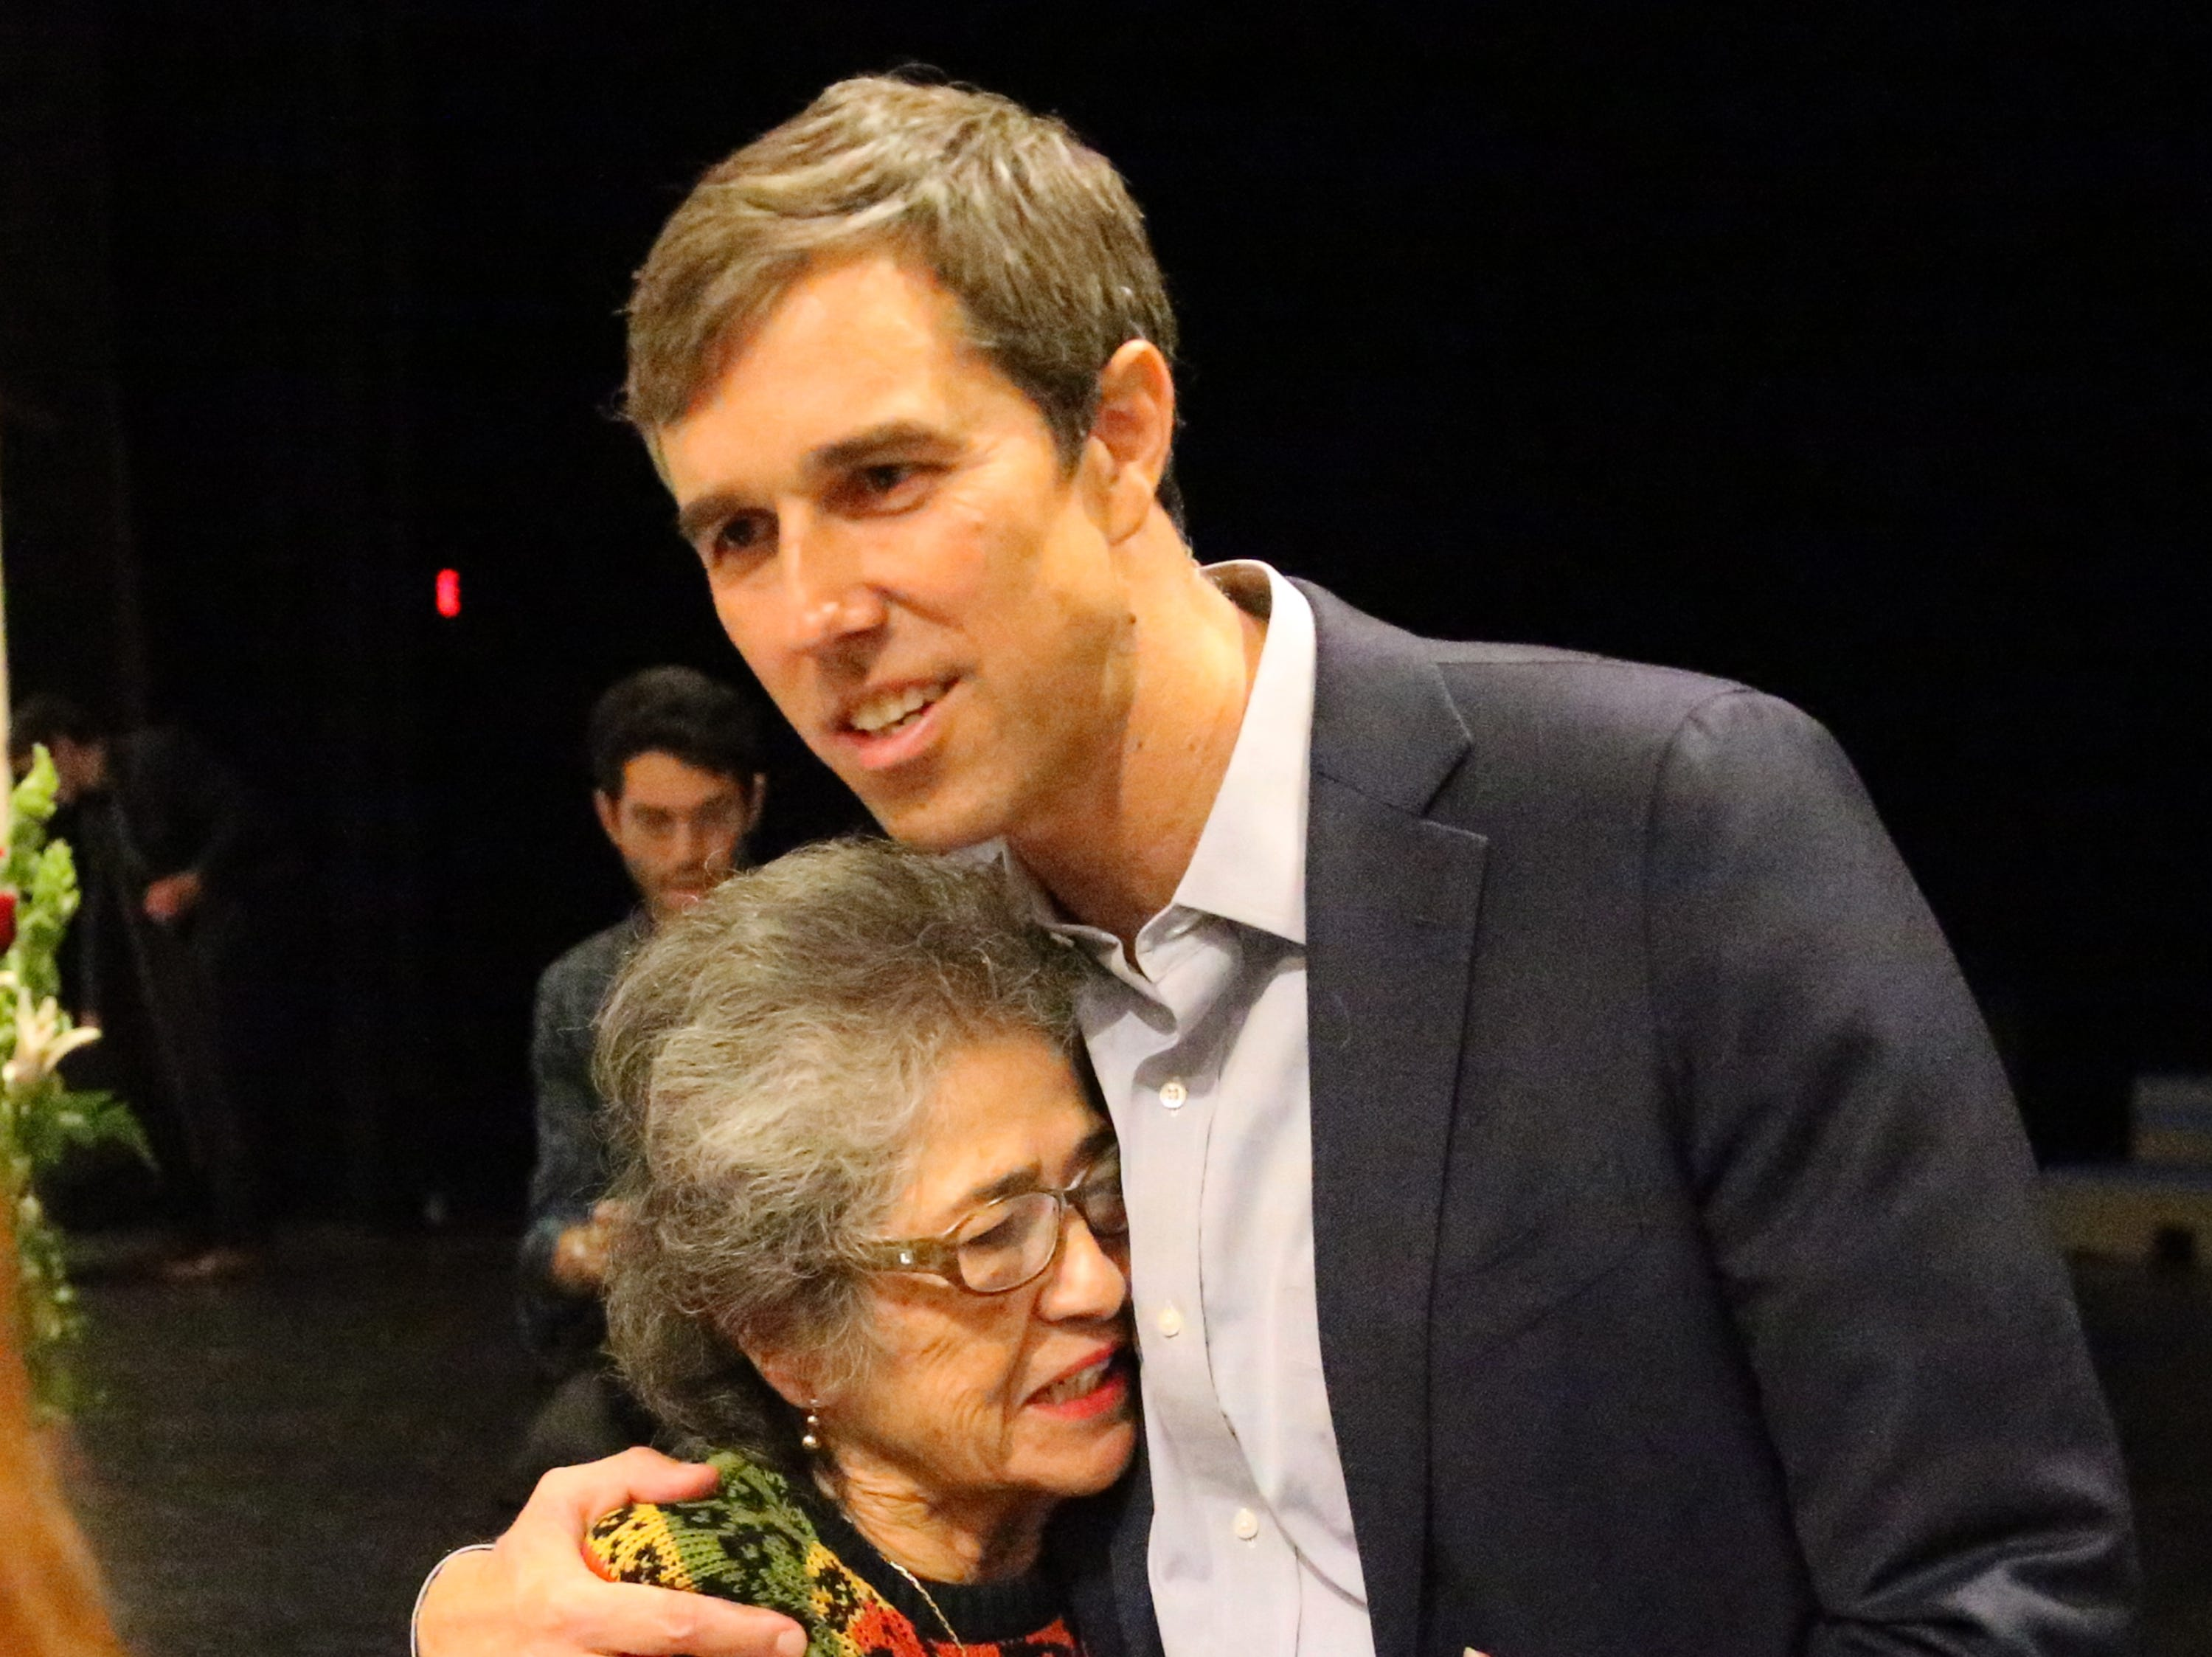 Norma Kidder of El Paso gets a hug from U.S. Rep. Beto O'Rourke at the end of his town hall on veterans issues Friday at Chapin High School.